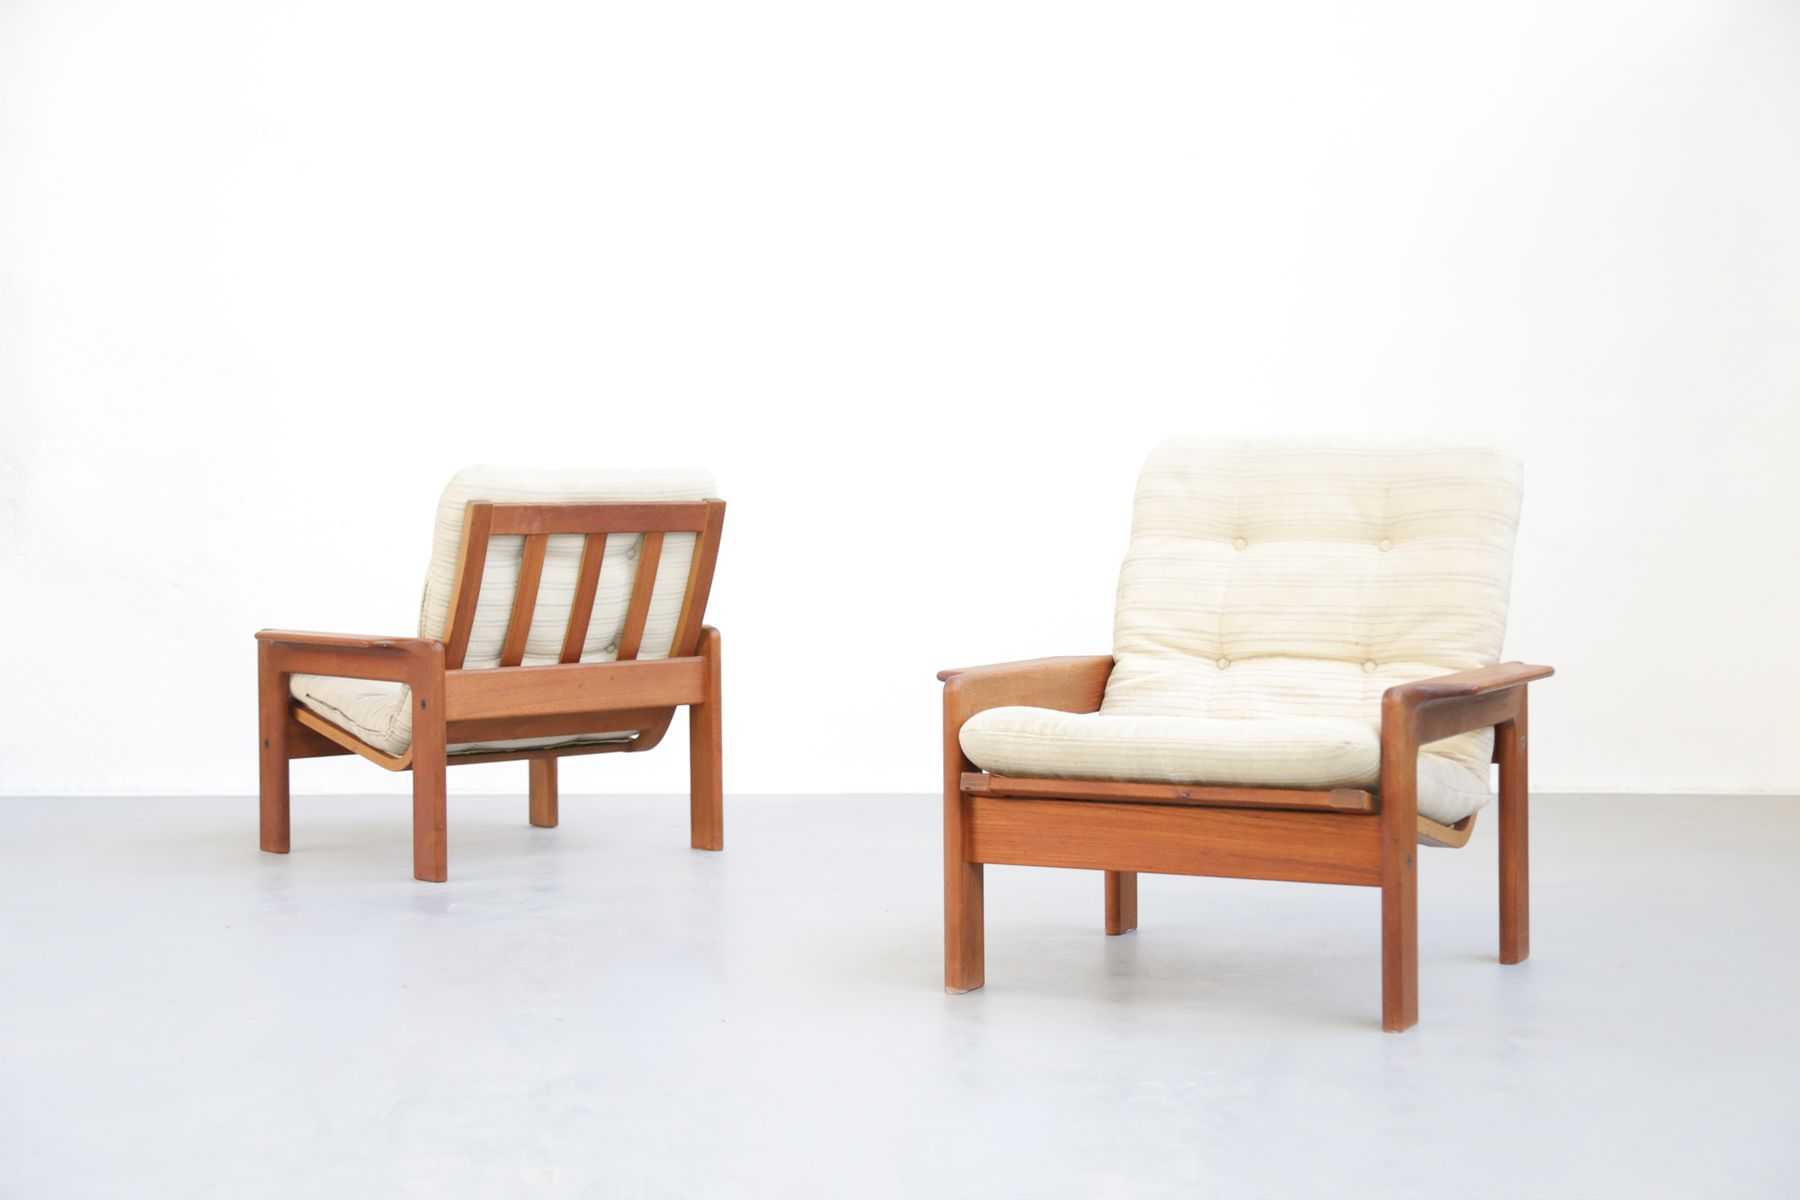 Mid Century Scandinavian Teak Lounge Chairs 1960s Set of 2 for sale at Pamono